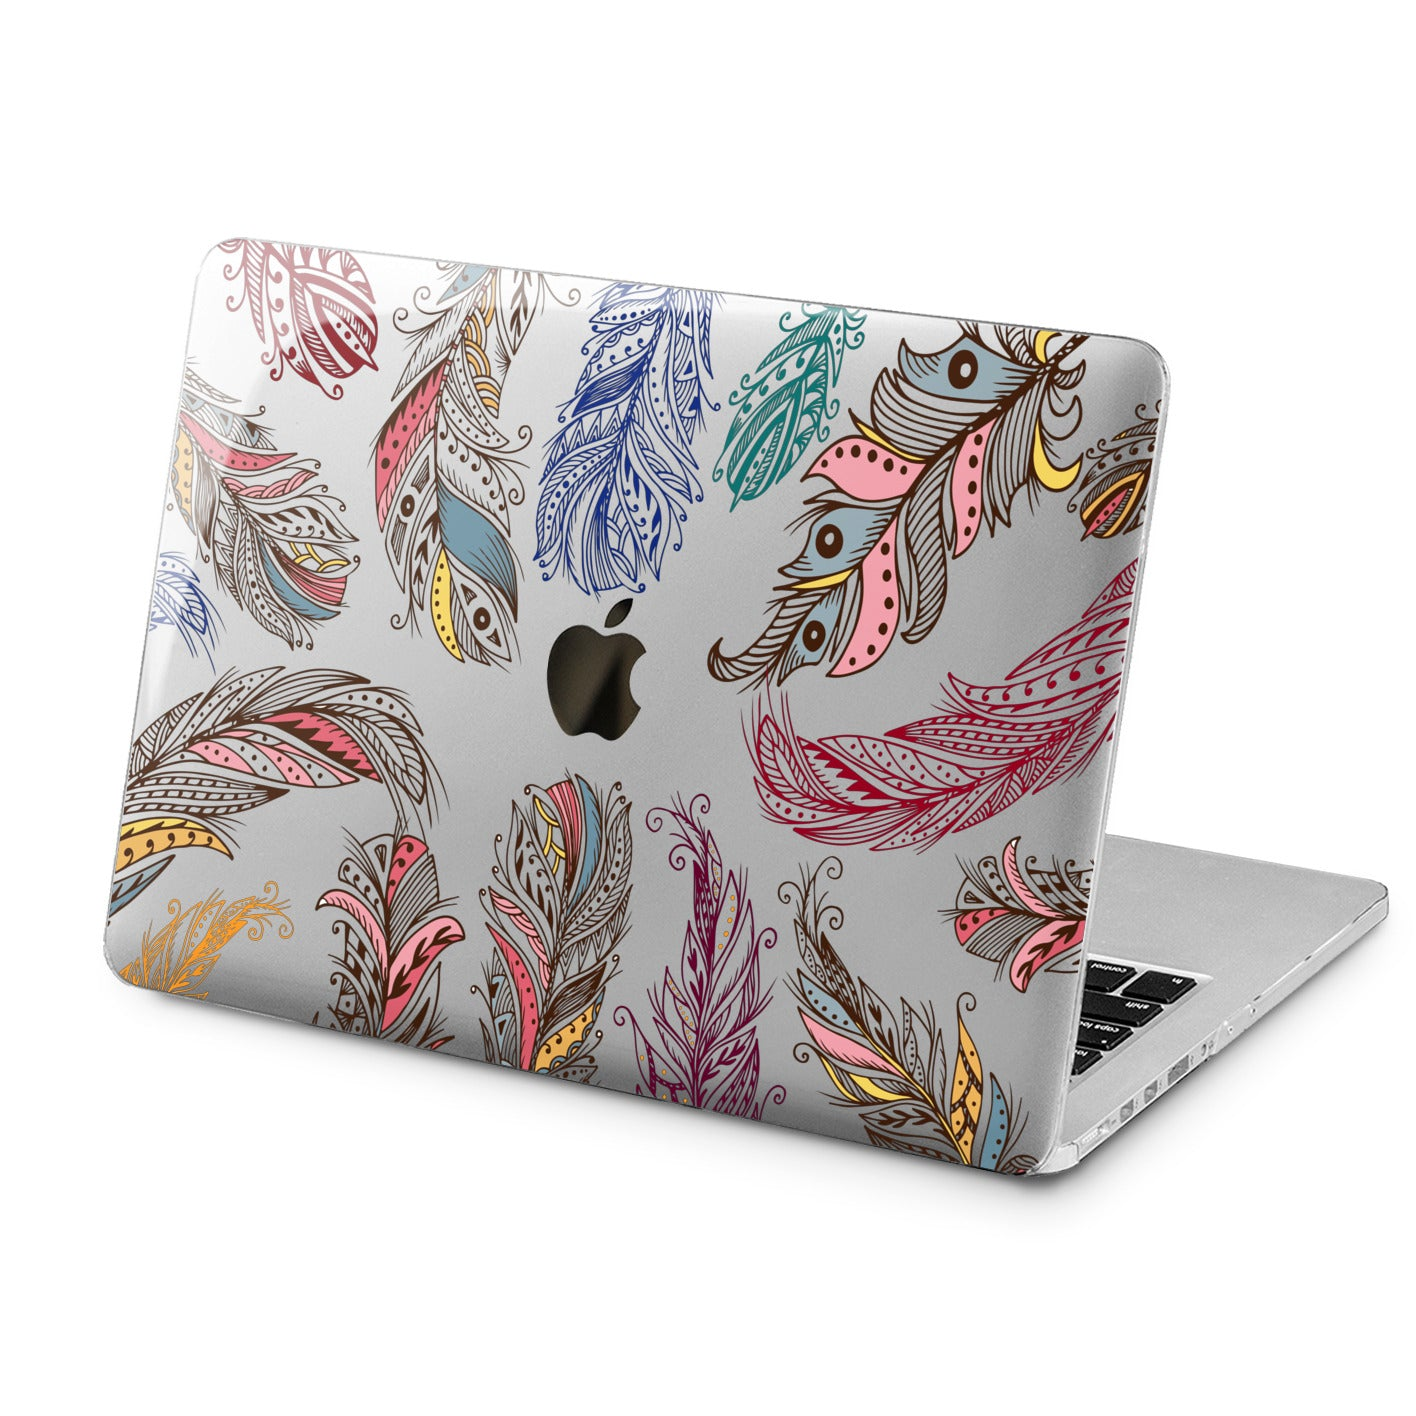 Lex Altern Lex Altern Amazing Feathers Case for your Laptop Apple Macbook.